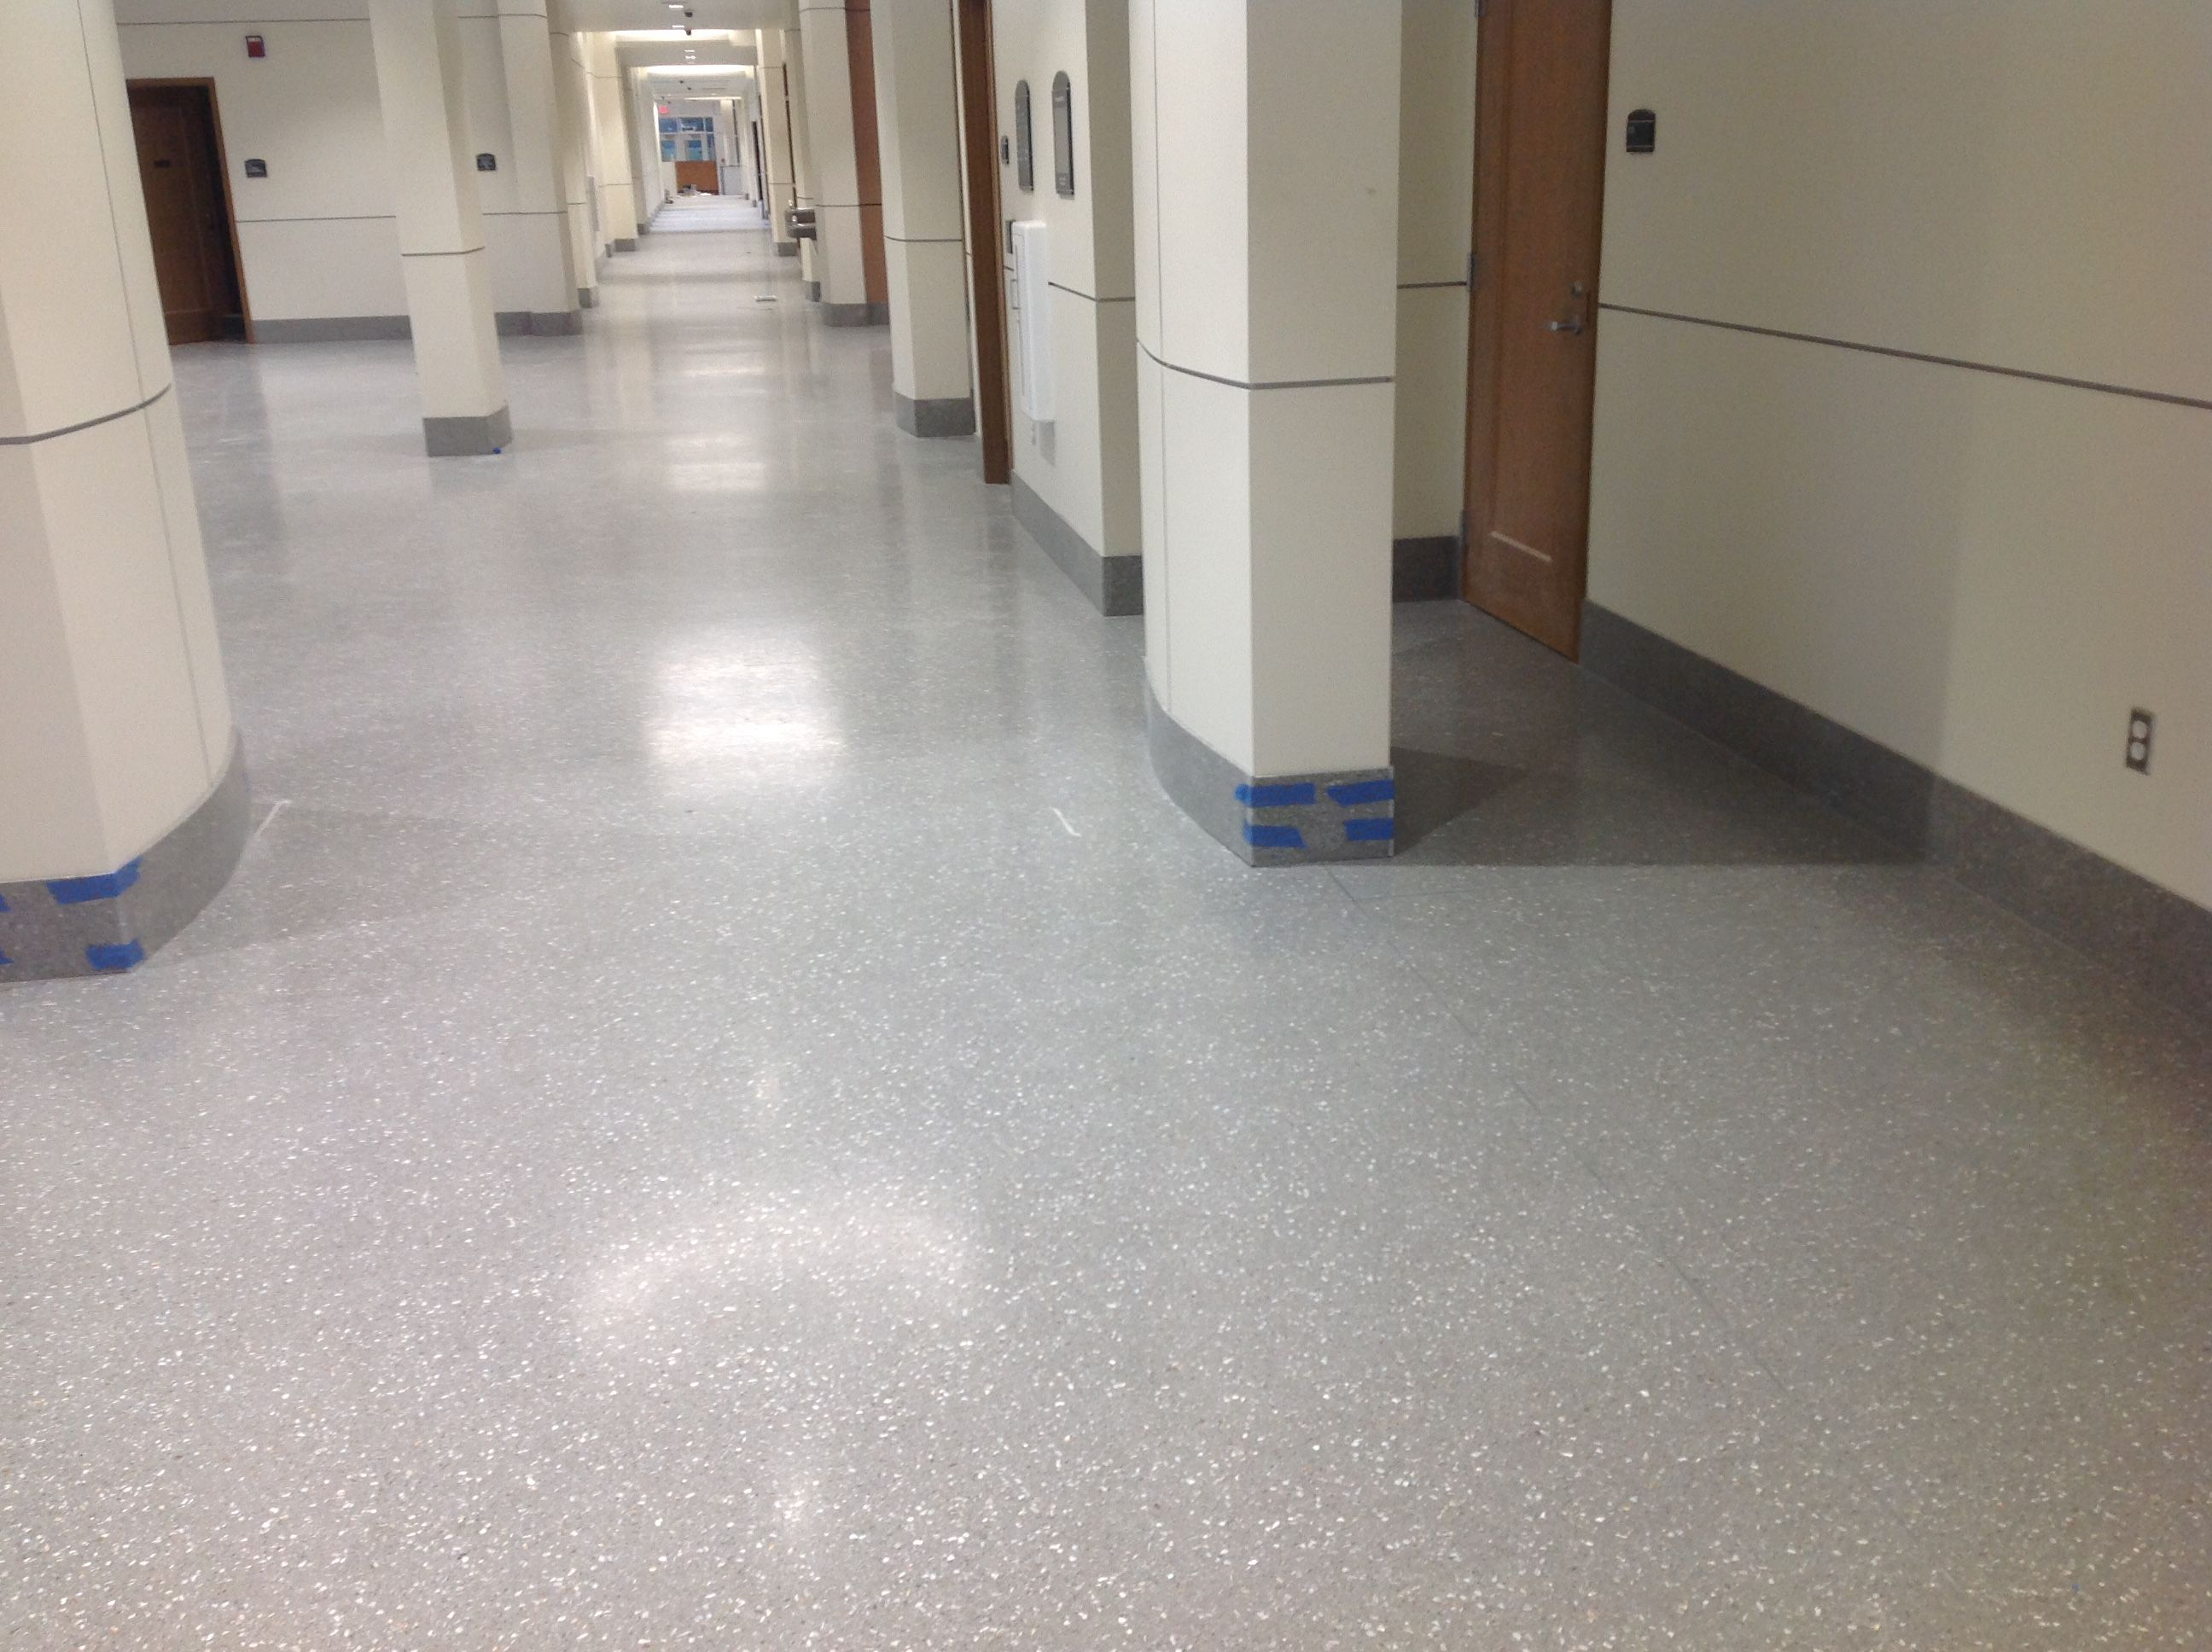 Epoxy Terrazzo Floors Installed At Hanover County Courthouse